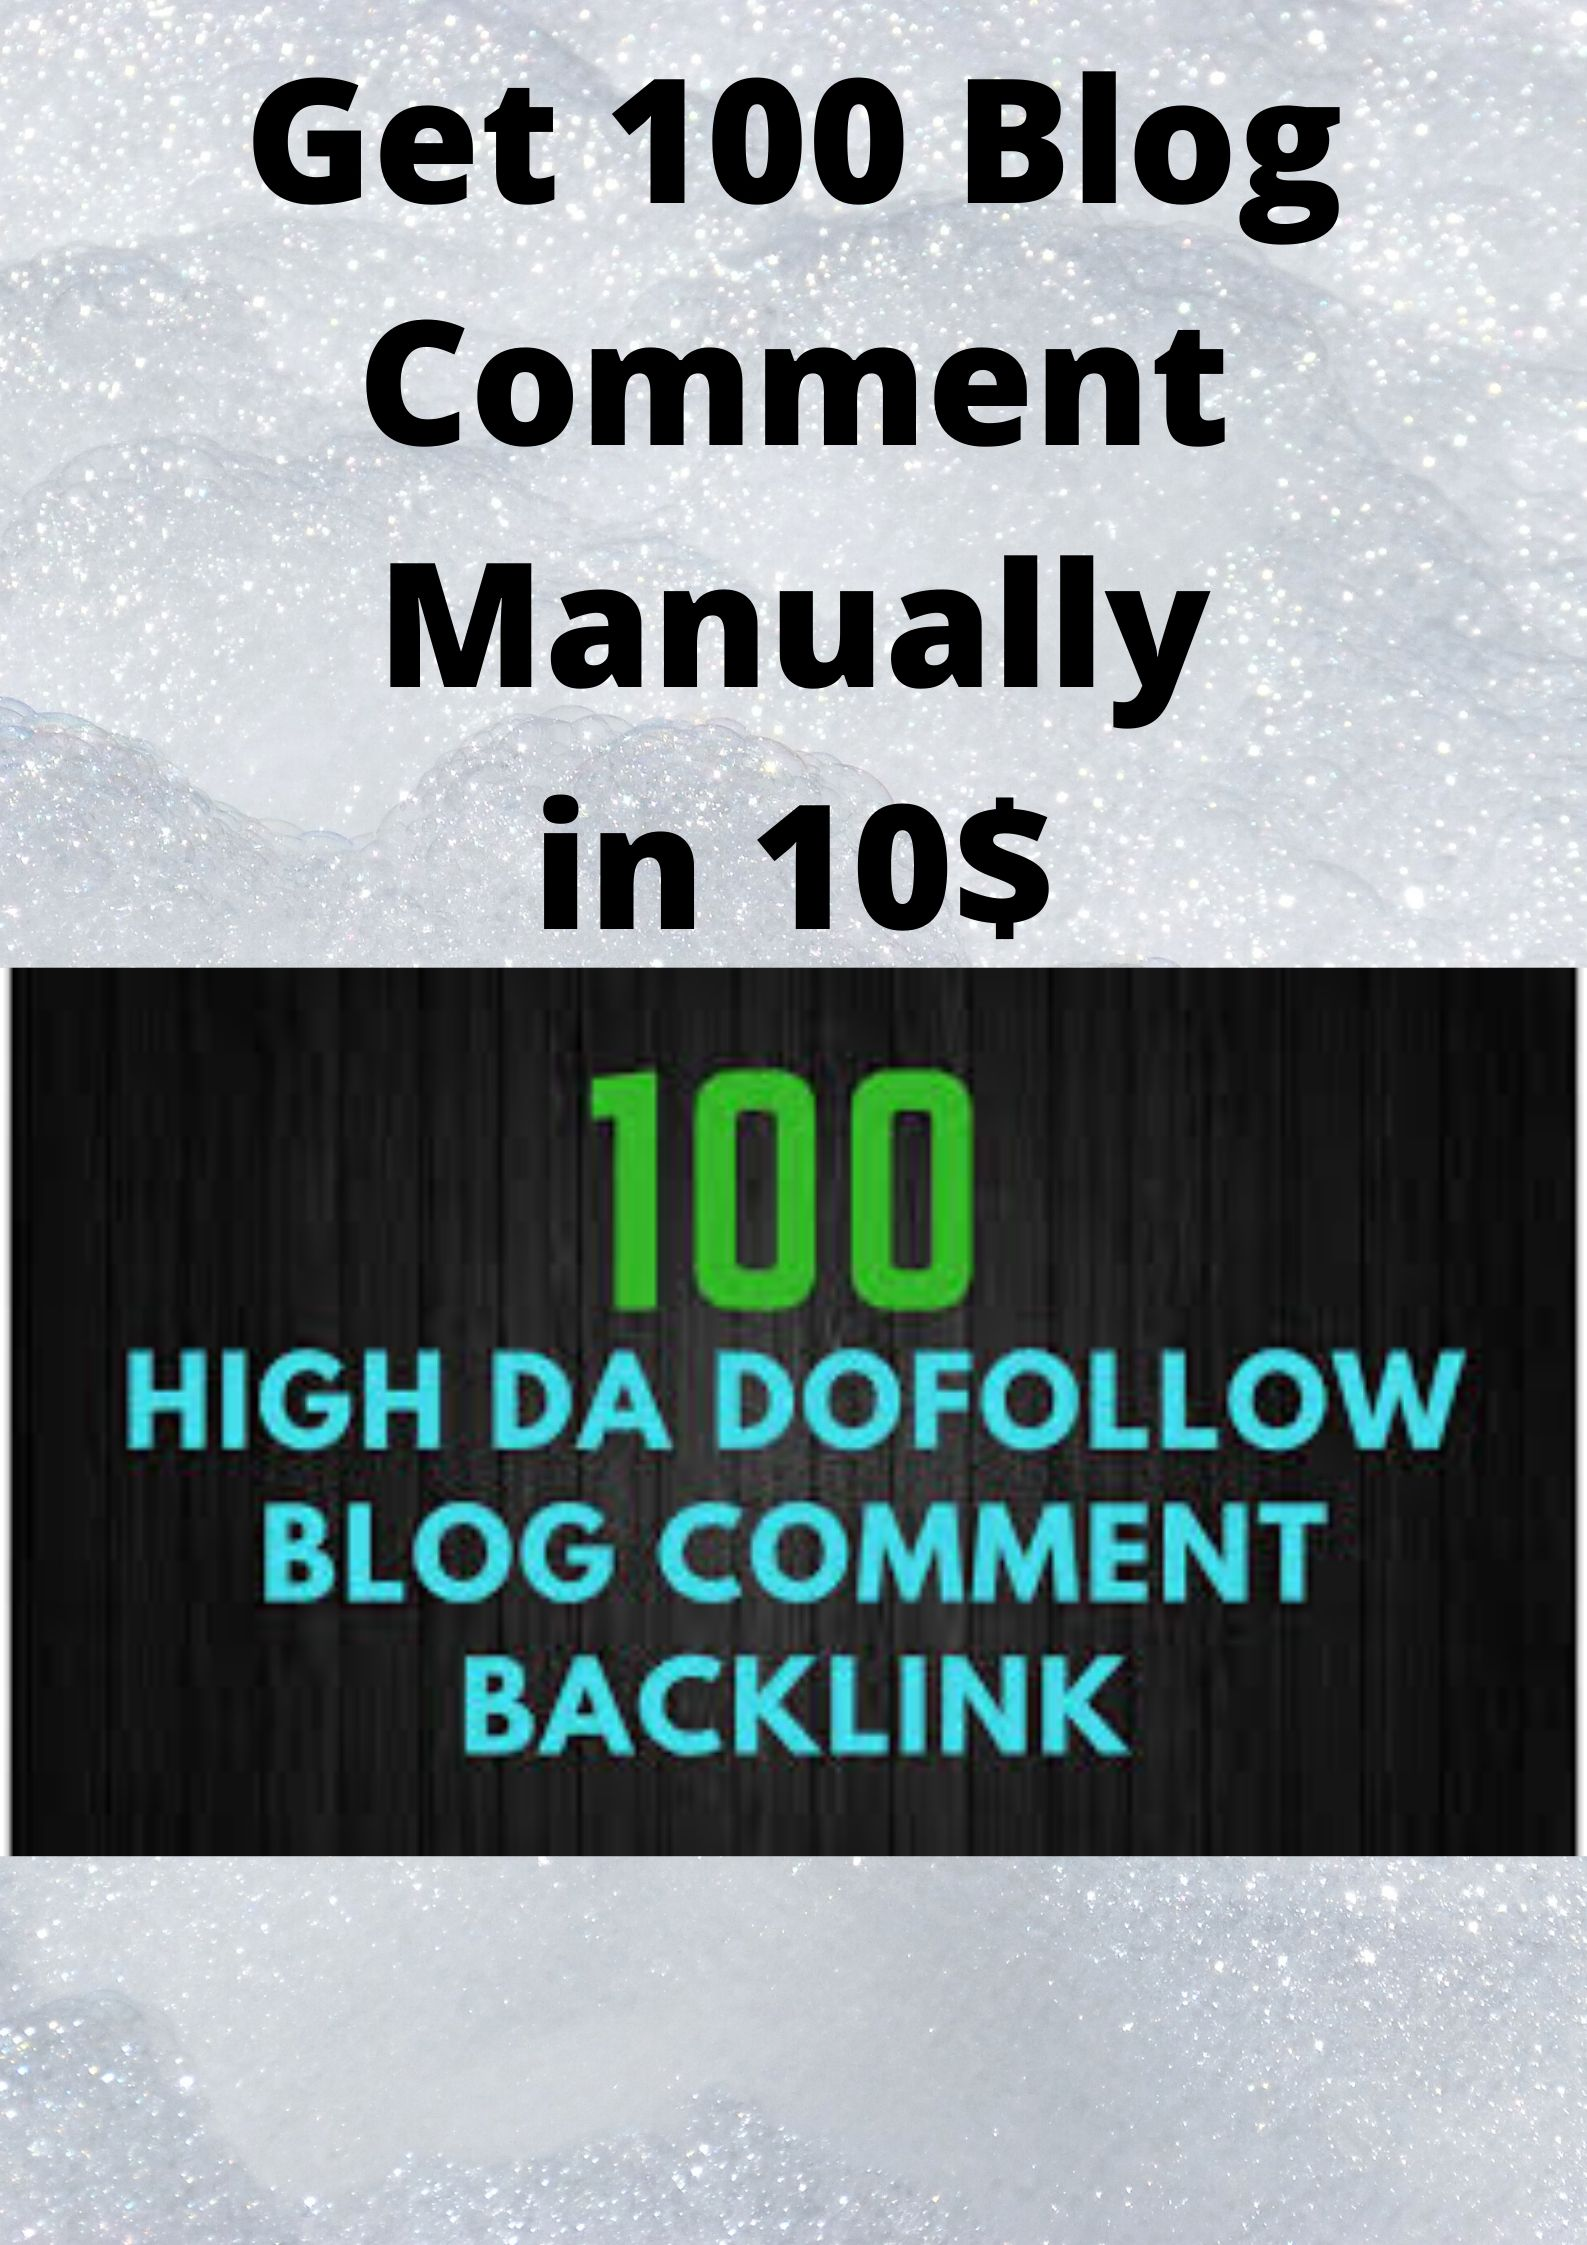 Get 100 Blog Comment Manually in 10 days